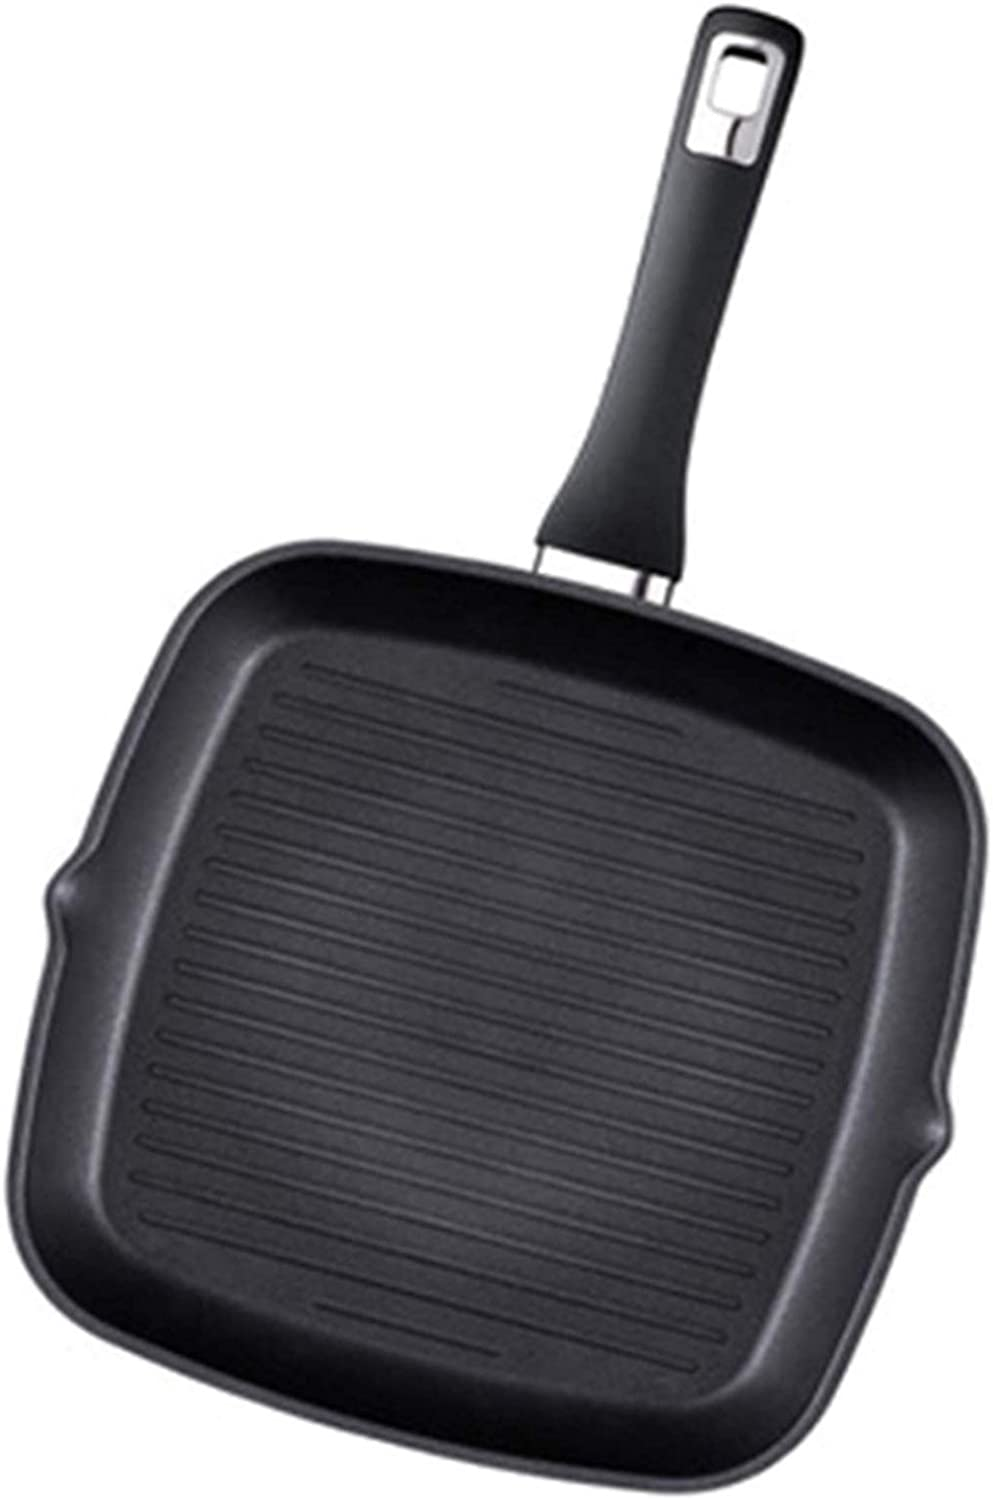 Cheap super special price Frying Pans Nonstick Free shipping Stove Square Grill Pan Meats Fis for Steaks